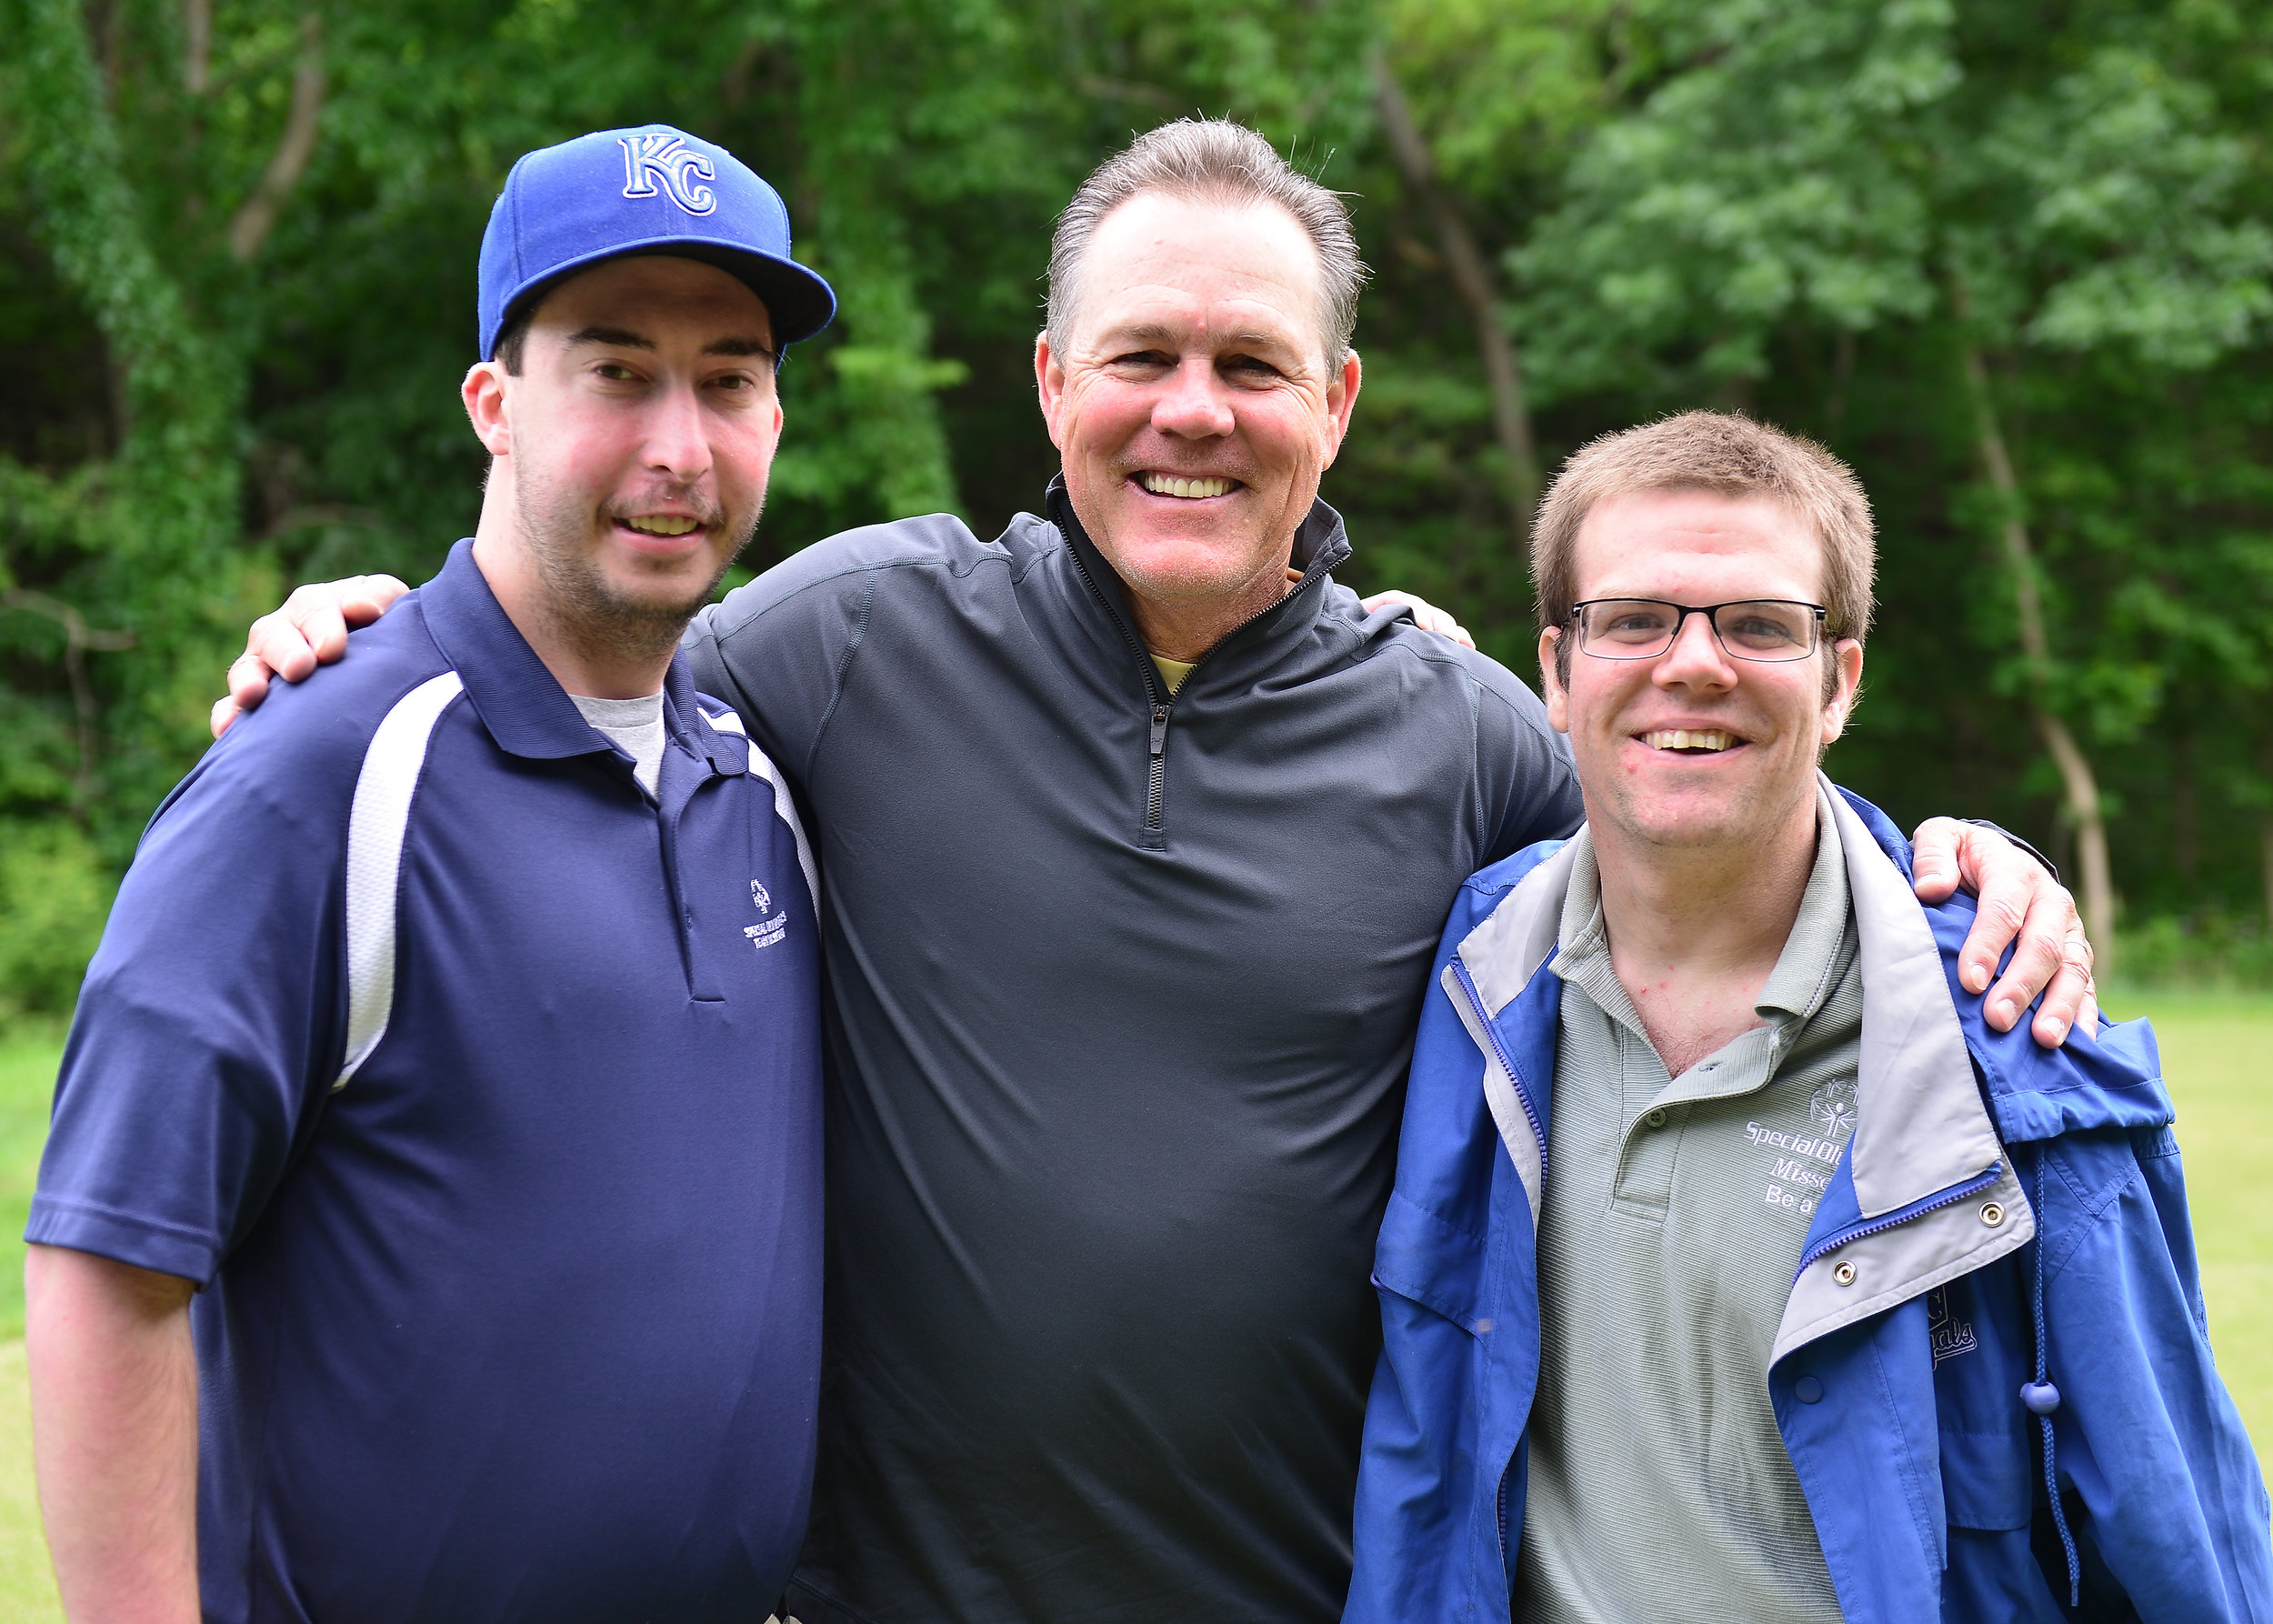 The annual Royals Charities Golf Tournament is a joint fundraiser for Special Olympics Missouri and Special Olympics Kansas. Last year it raised more than $65,000. The Royals also invite our athletes out for a day at the ballpark complete with a pre-game scrimmage on the field.